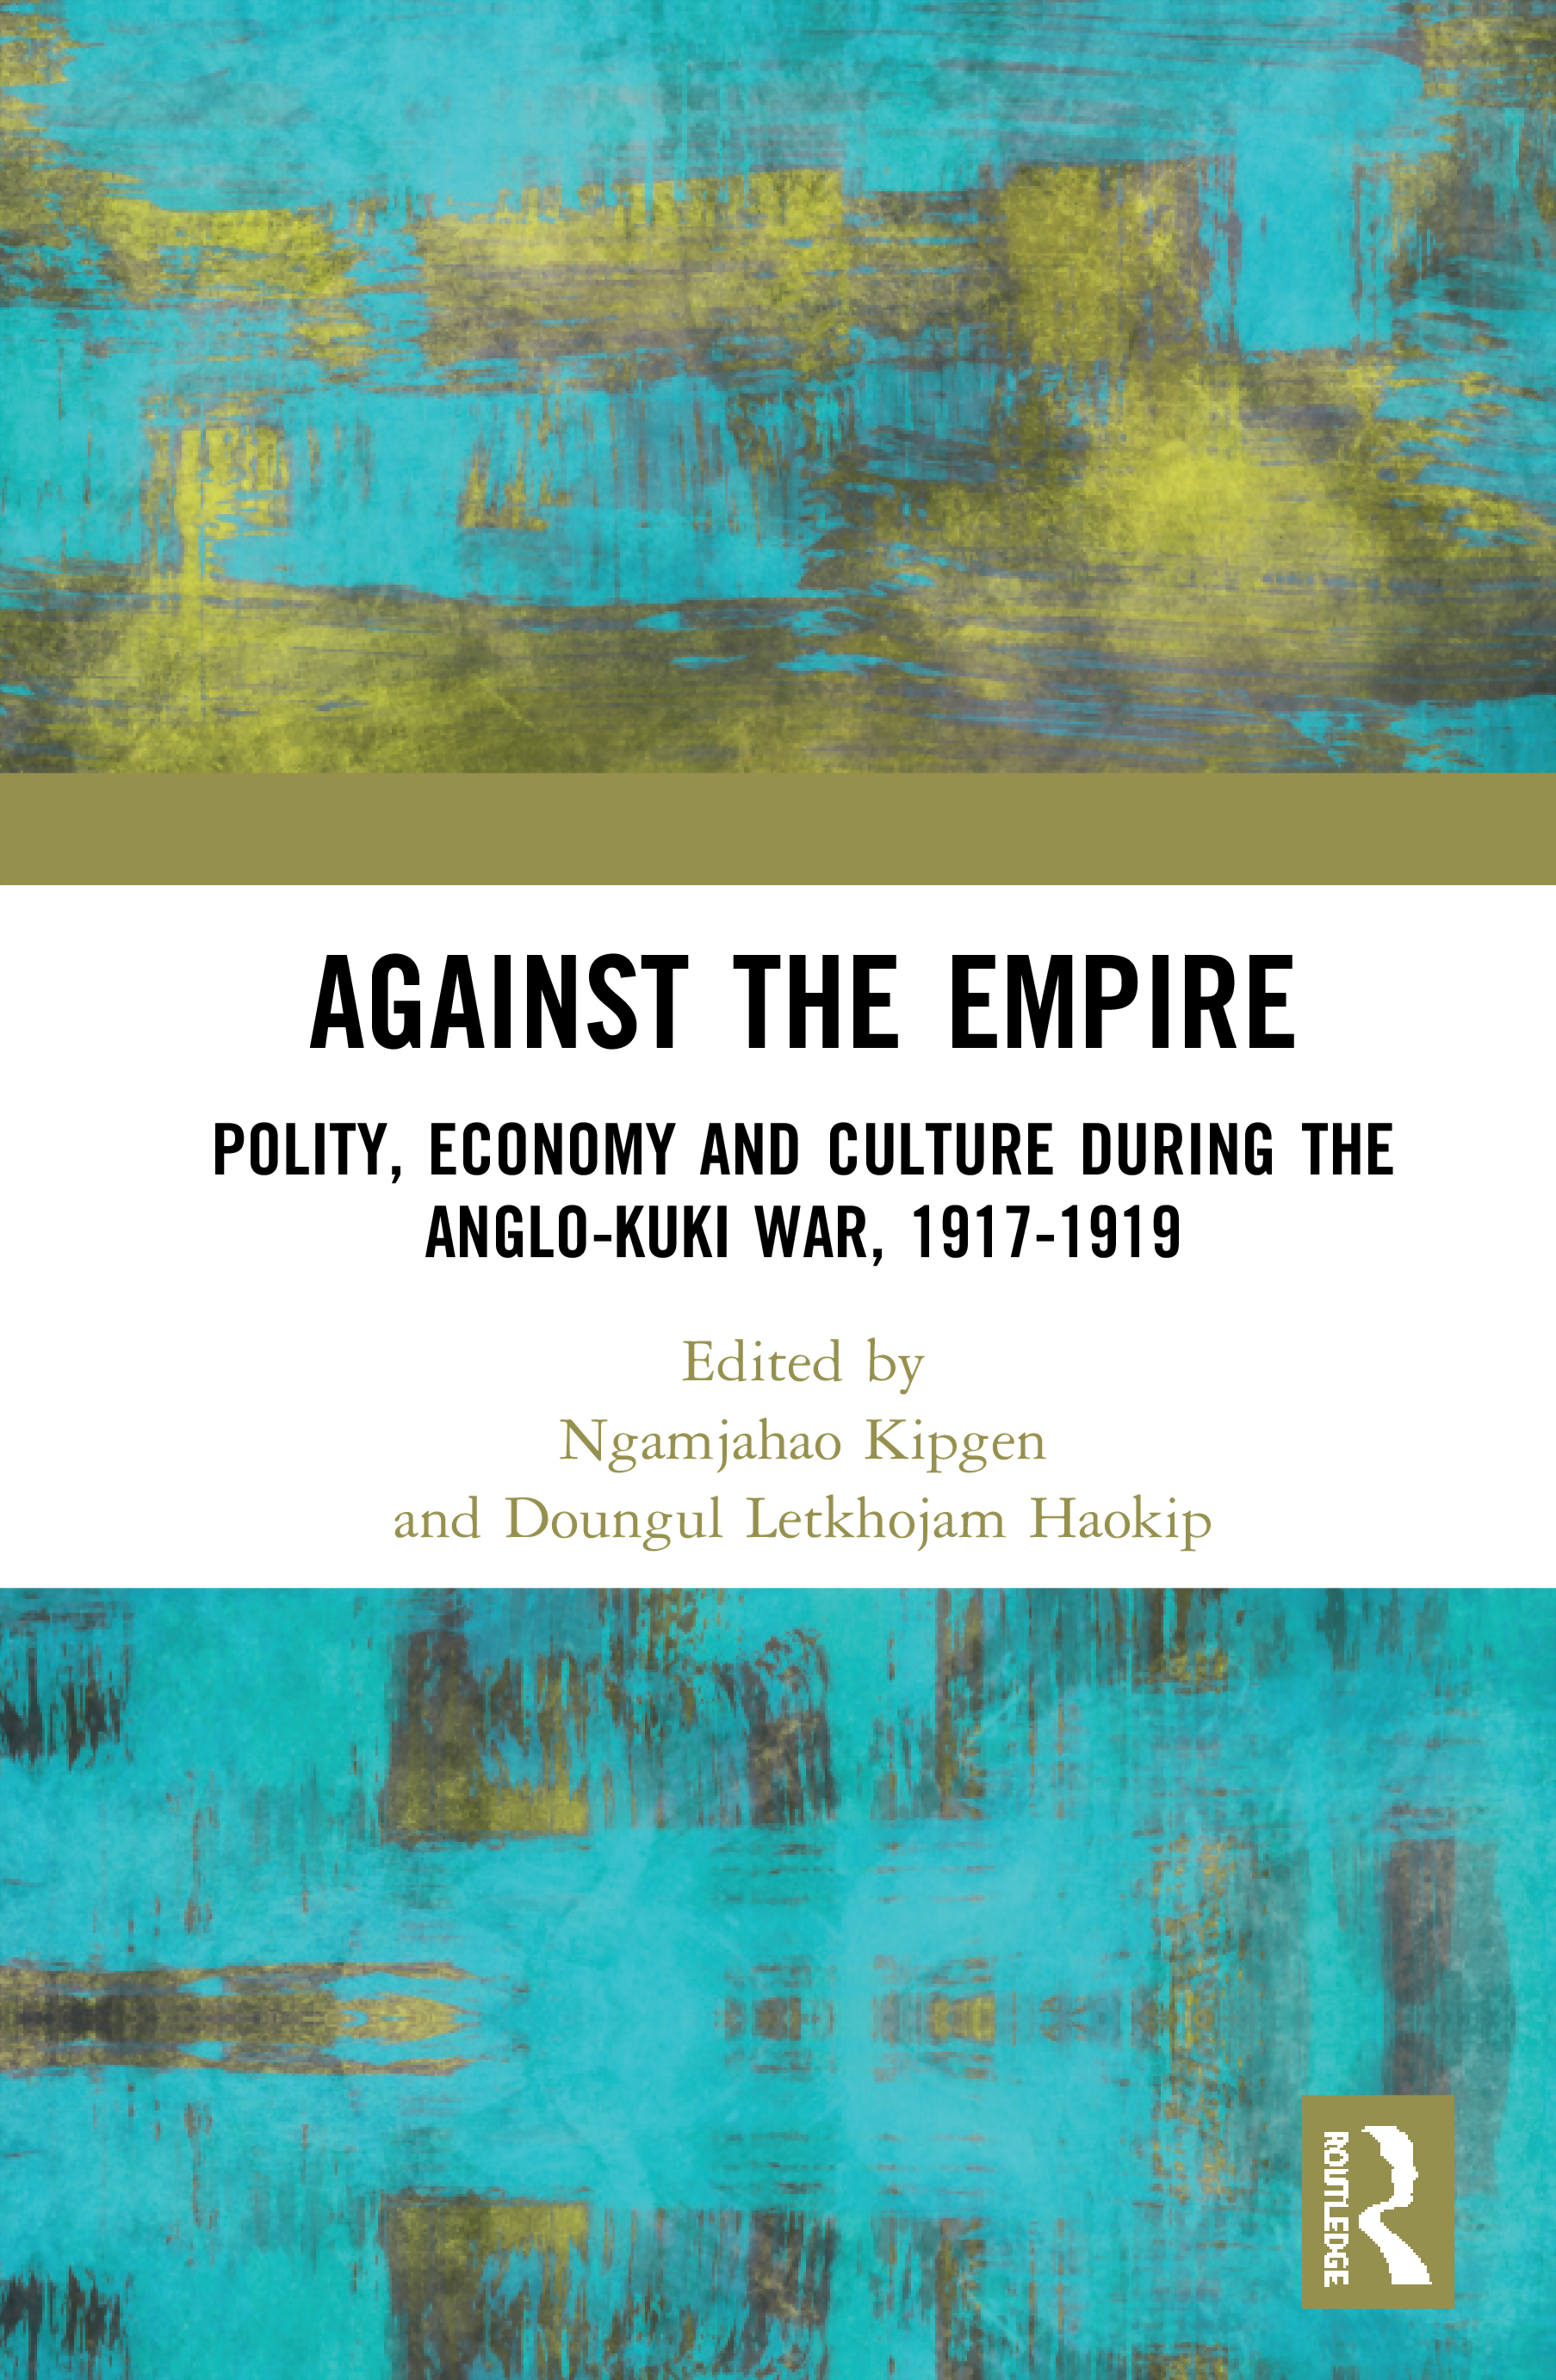 Against the Empire: Polity, Economy and Culture during the Anglo-Kuki War, 1917-1919 book cover